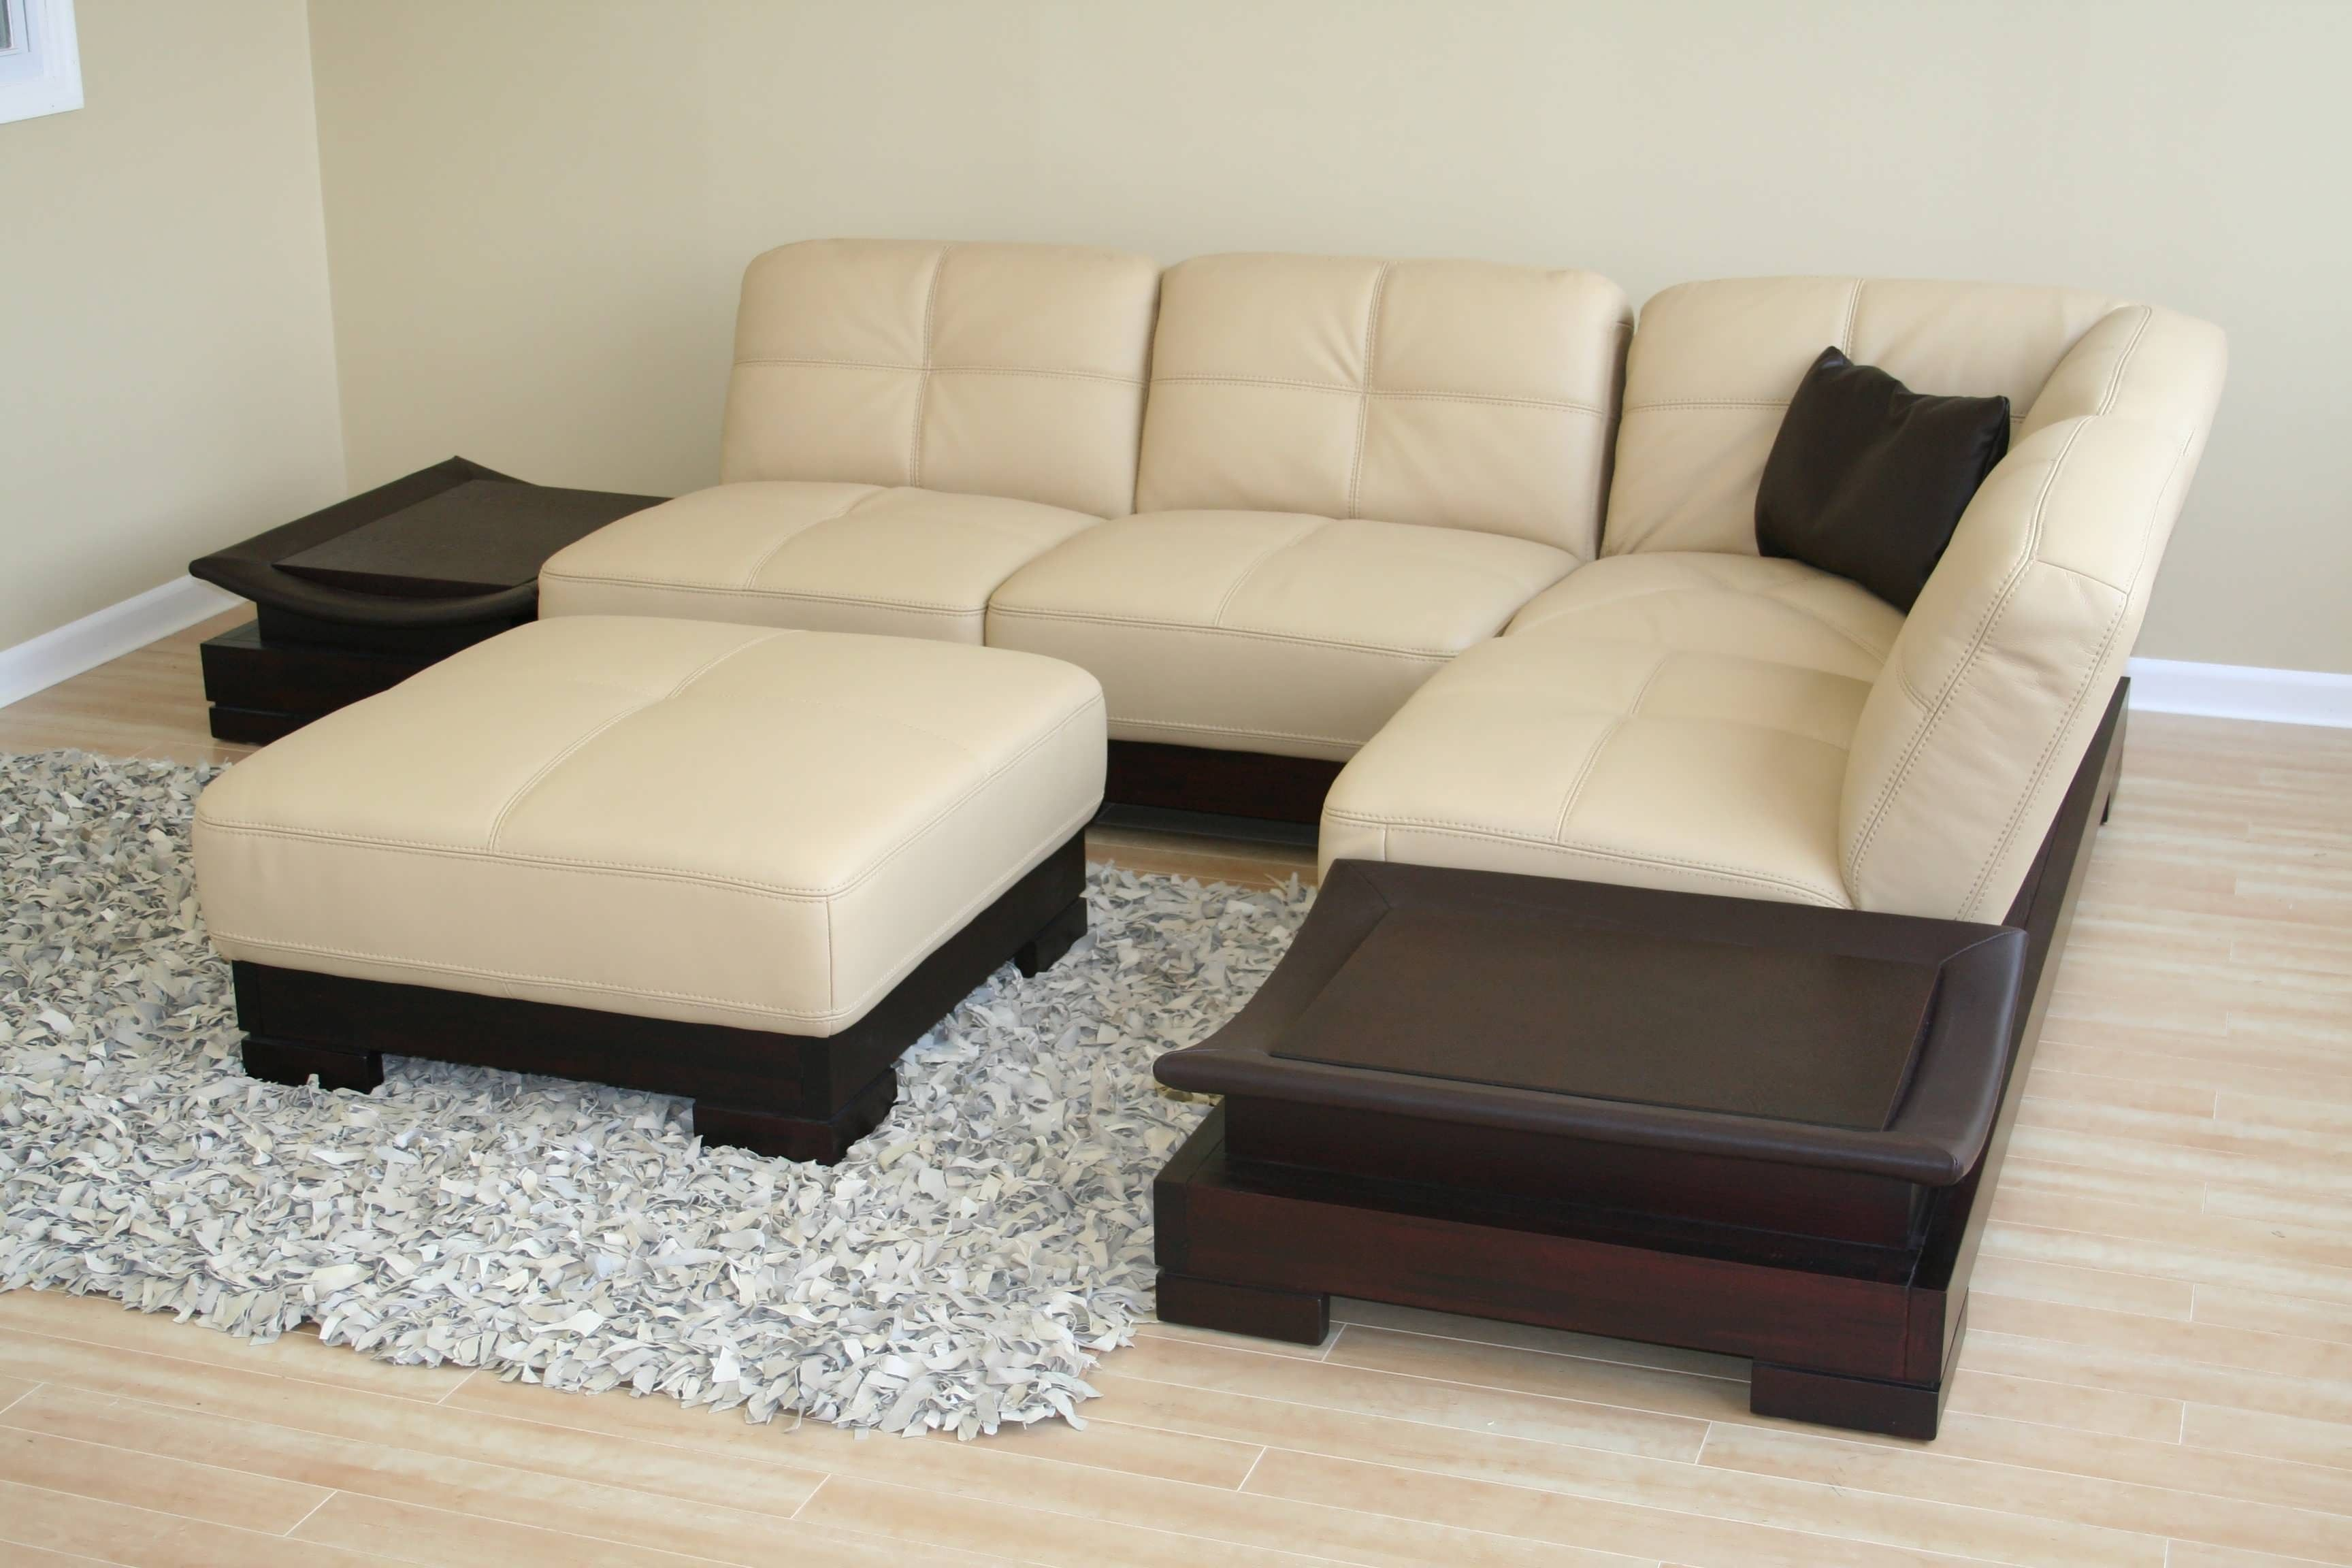 Sofa : Grey Sectional Couch Grey Leather Sectional Double Chaise ...